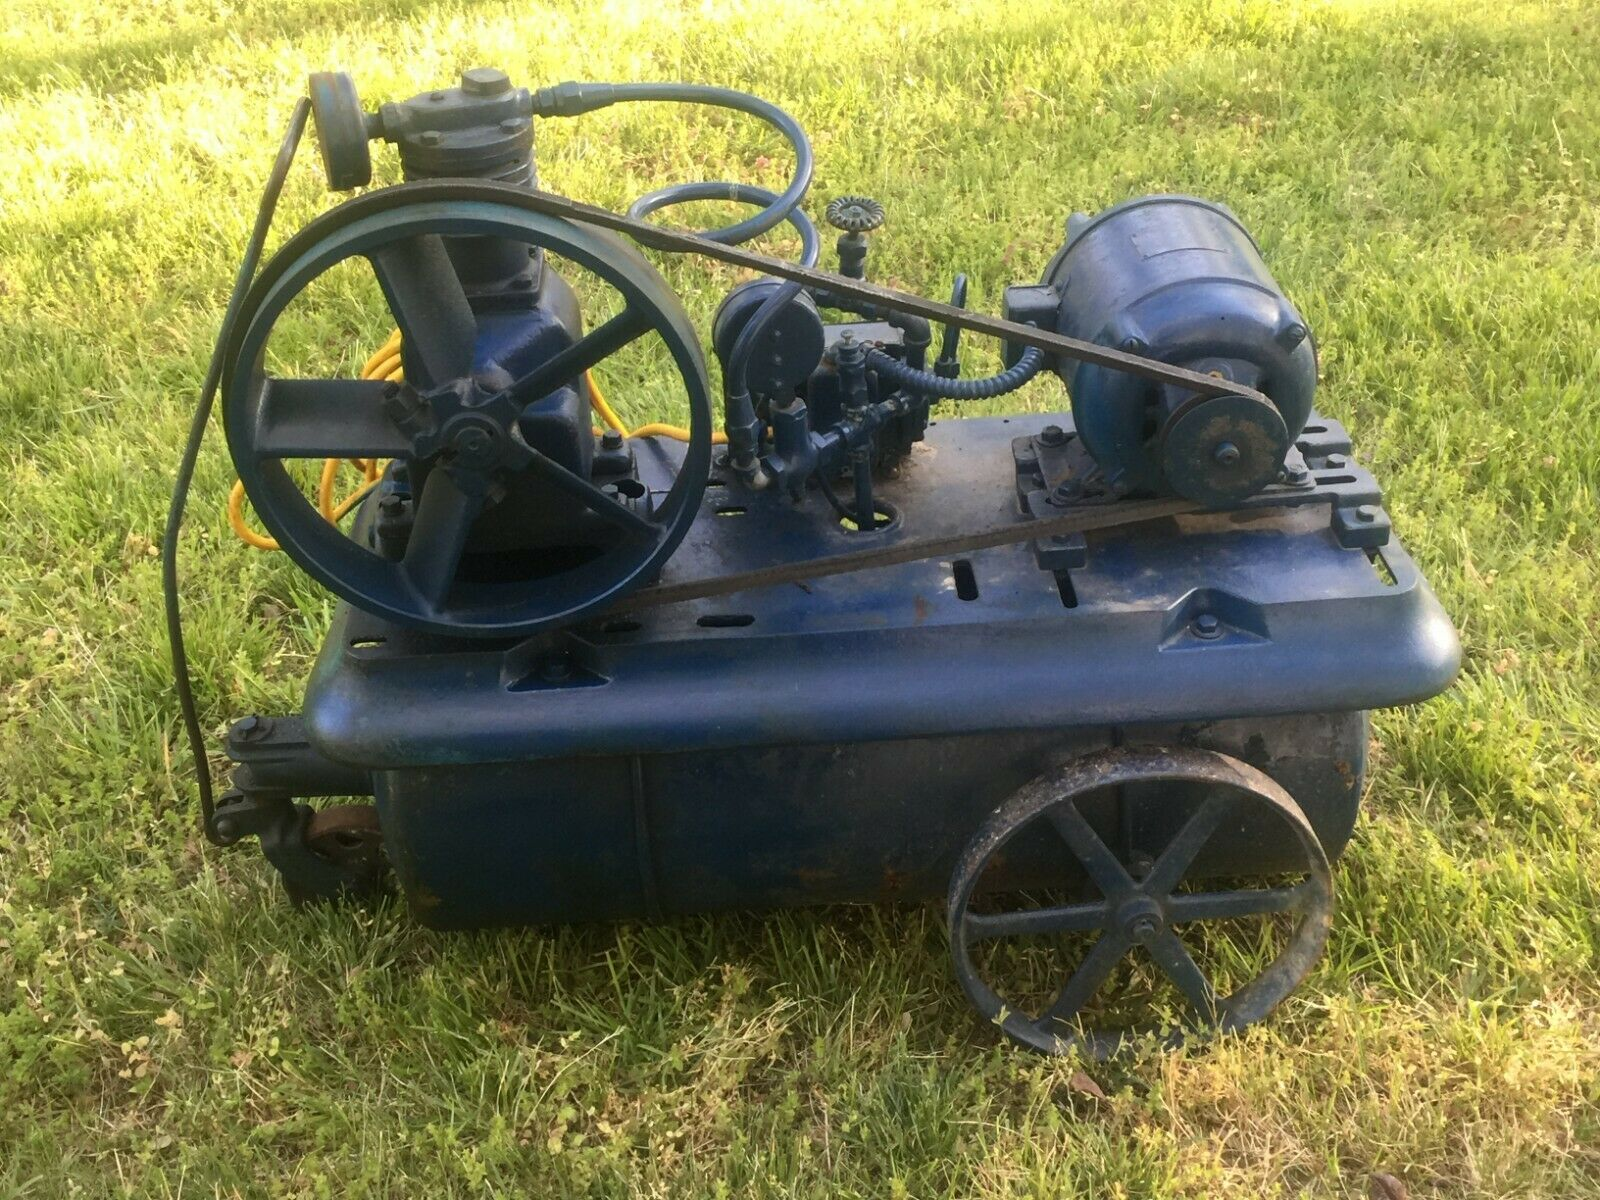 1925 Antique / Vintage Portable Kellogg Air Compressor *RUNS GREAT SEE VIDEOS*. Available Now for 1199.99